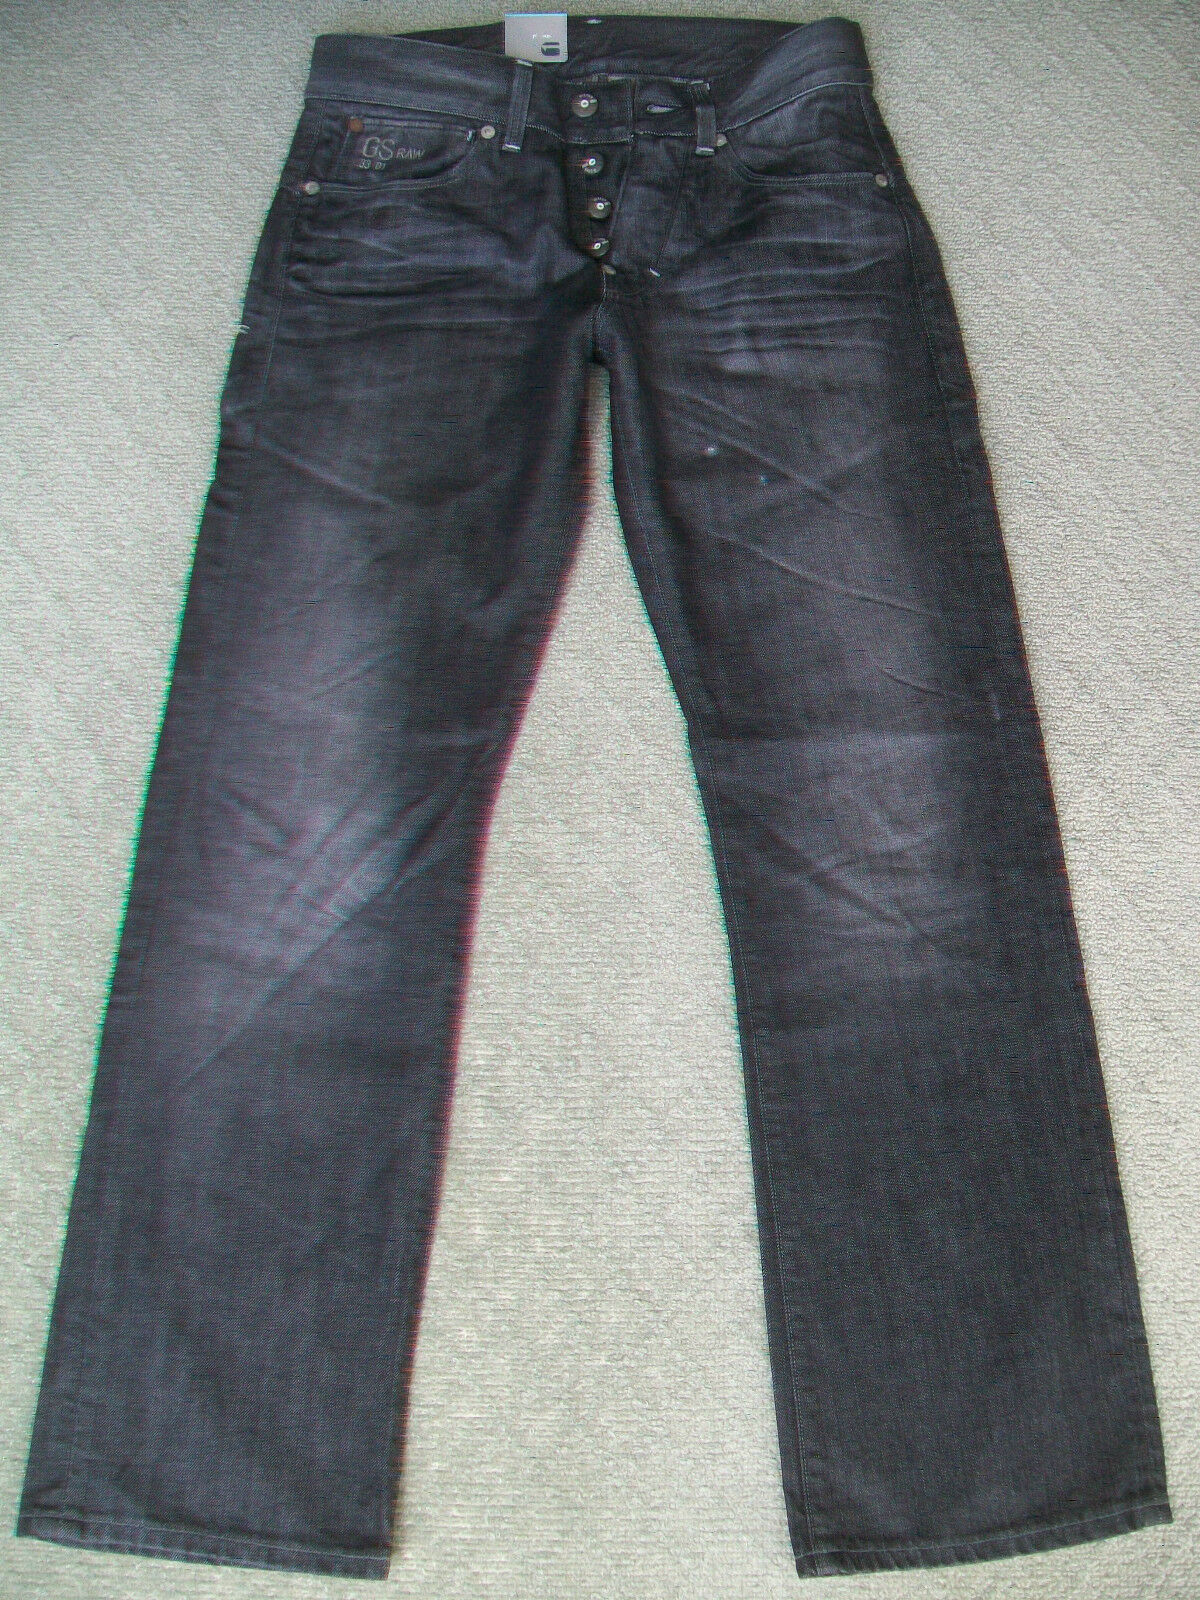 MENS G STAR 'NEW RUGER STRAIGHT' JEANS - BNWT - SIZE 31 L